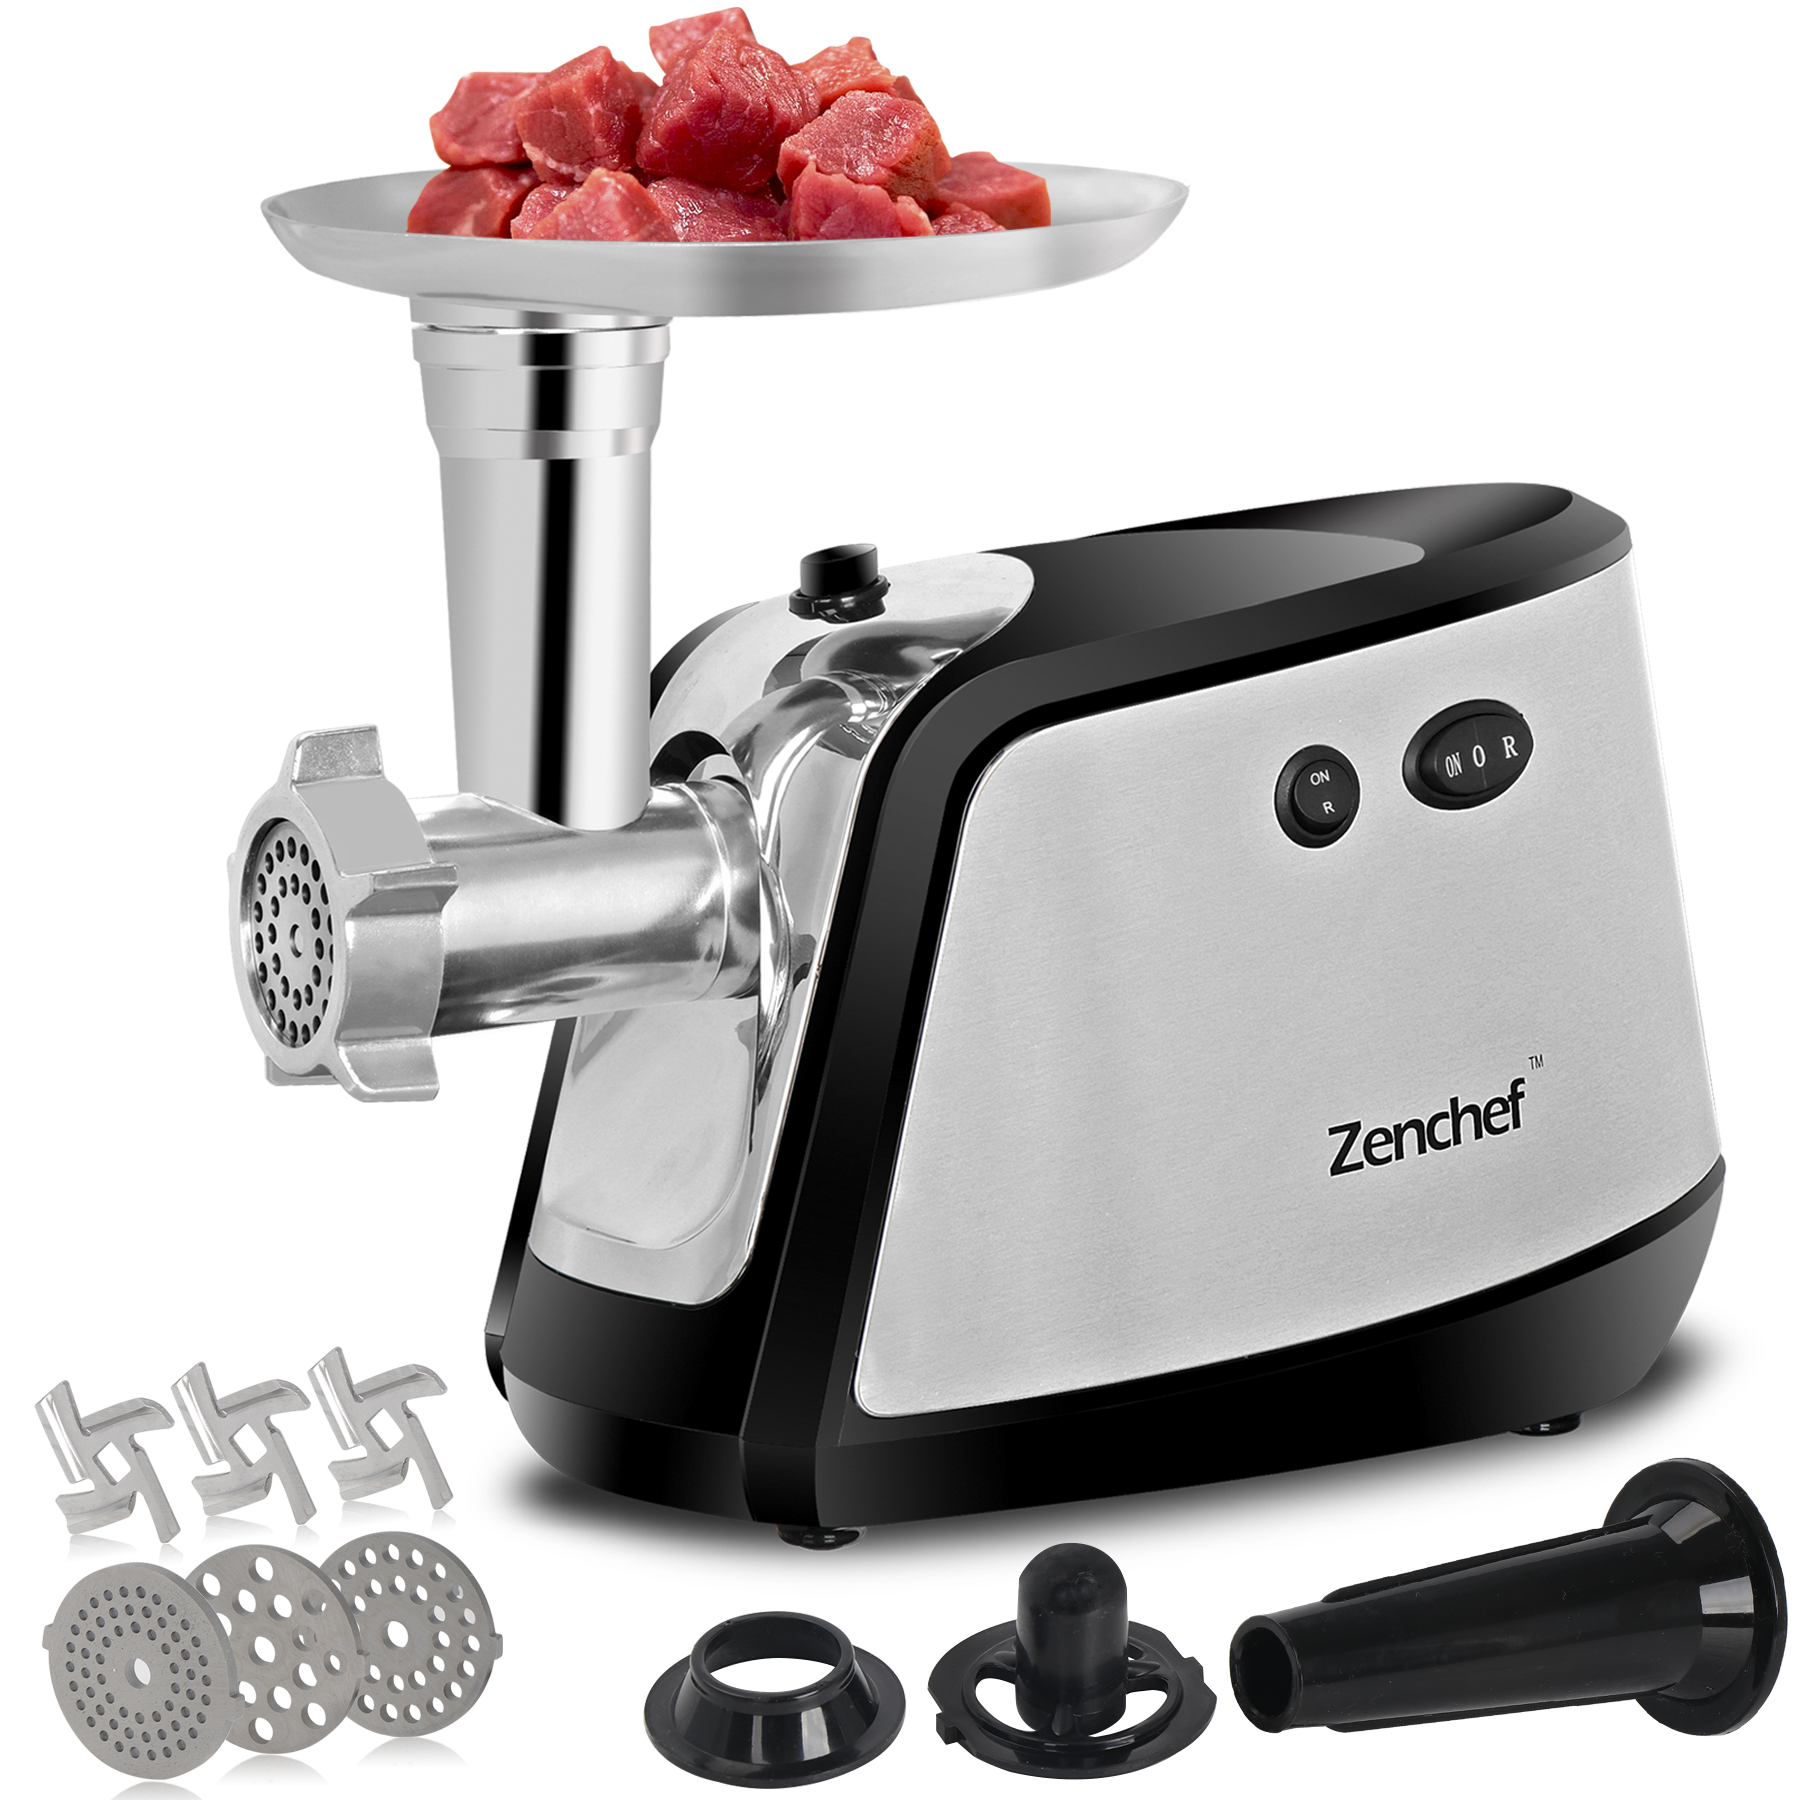 Zeny 1000W Electric Meat Grinder Sausage Stuffer Meat Mincer - 3 Stainless Steel Grinding Plates and Sausage Stuffing Tubes for Home Use &Commercial